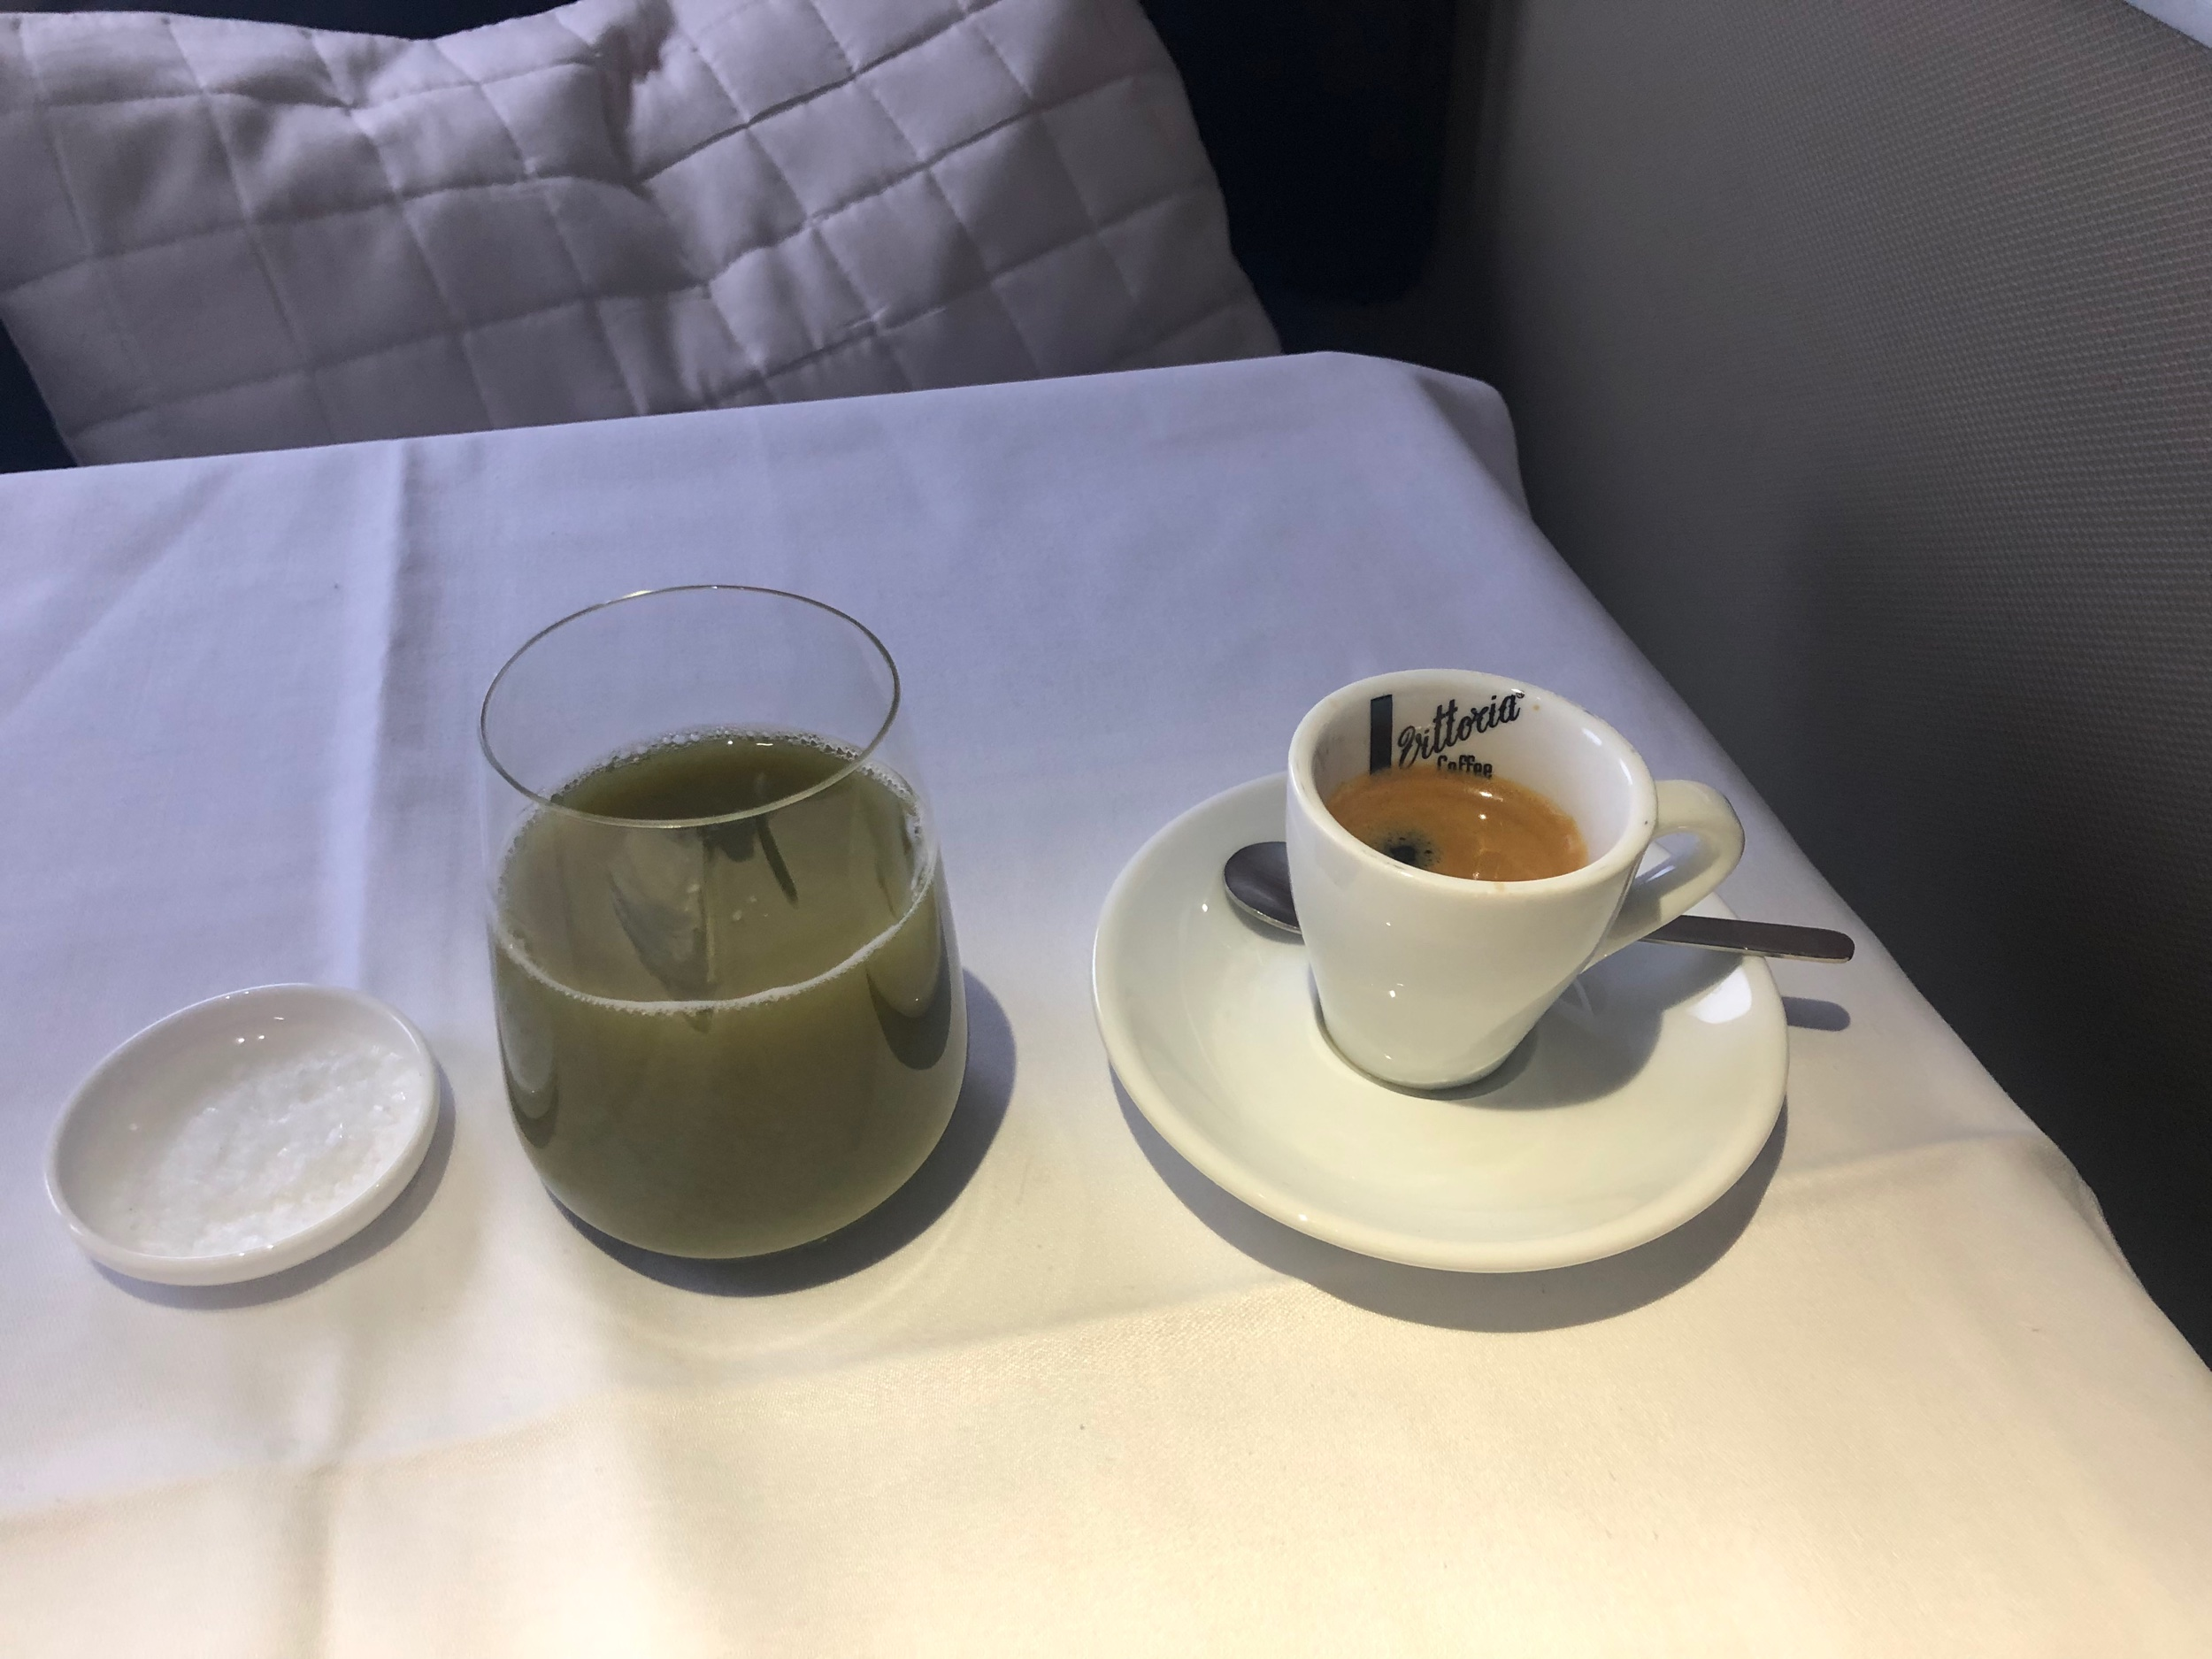 Qantas First Class Breakfast - Green Juice and Espresso